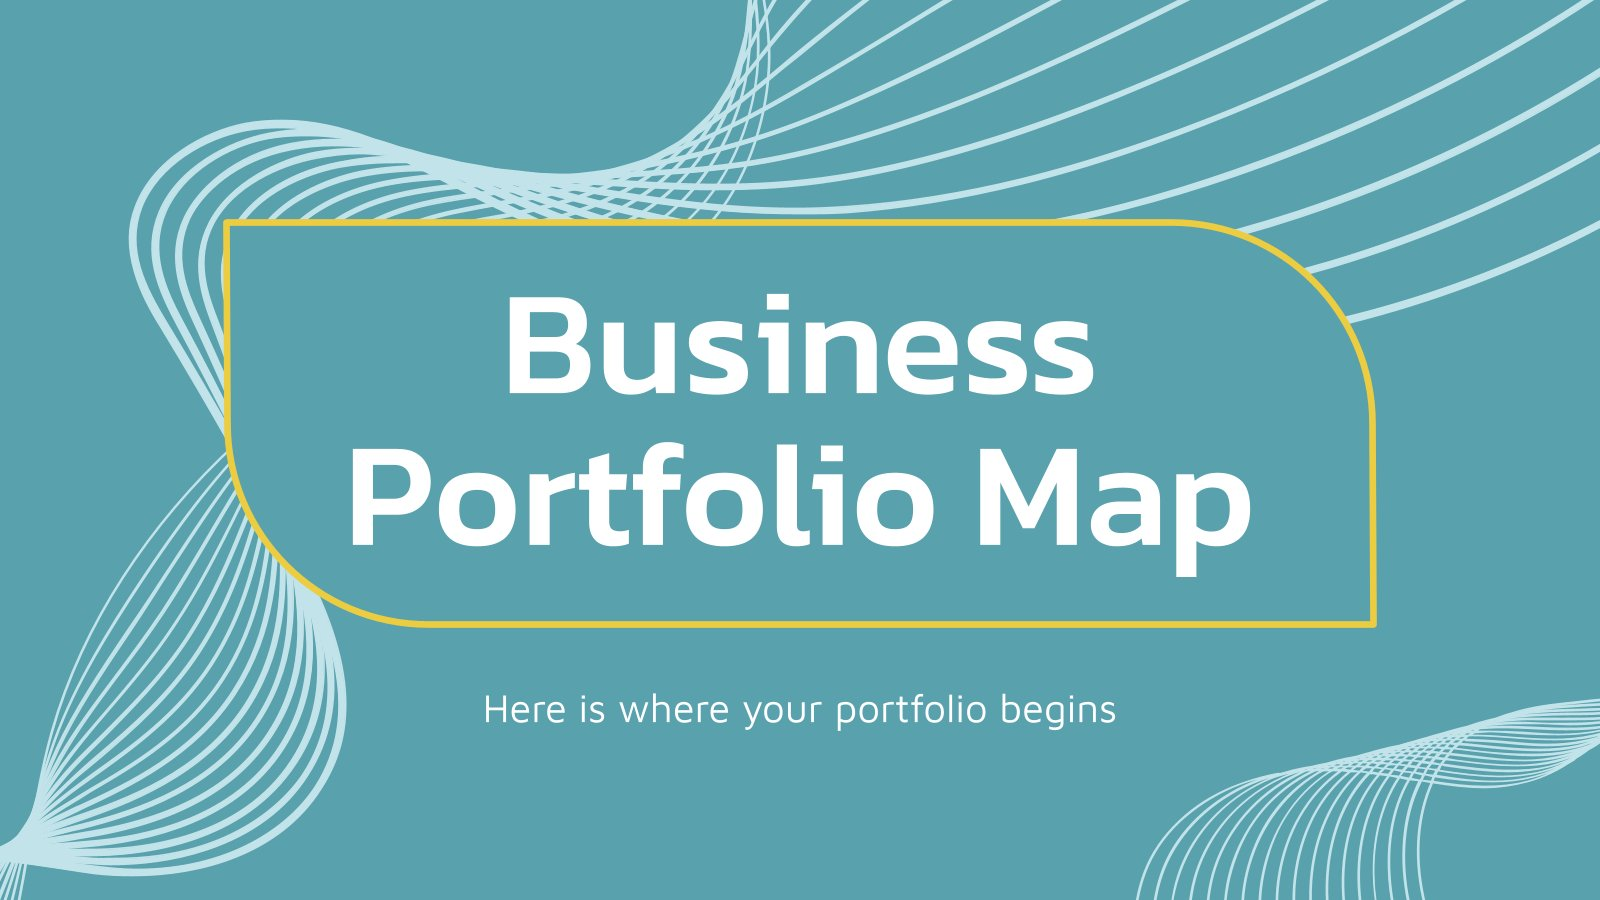 Business Portfolio Map presentation template